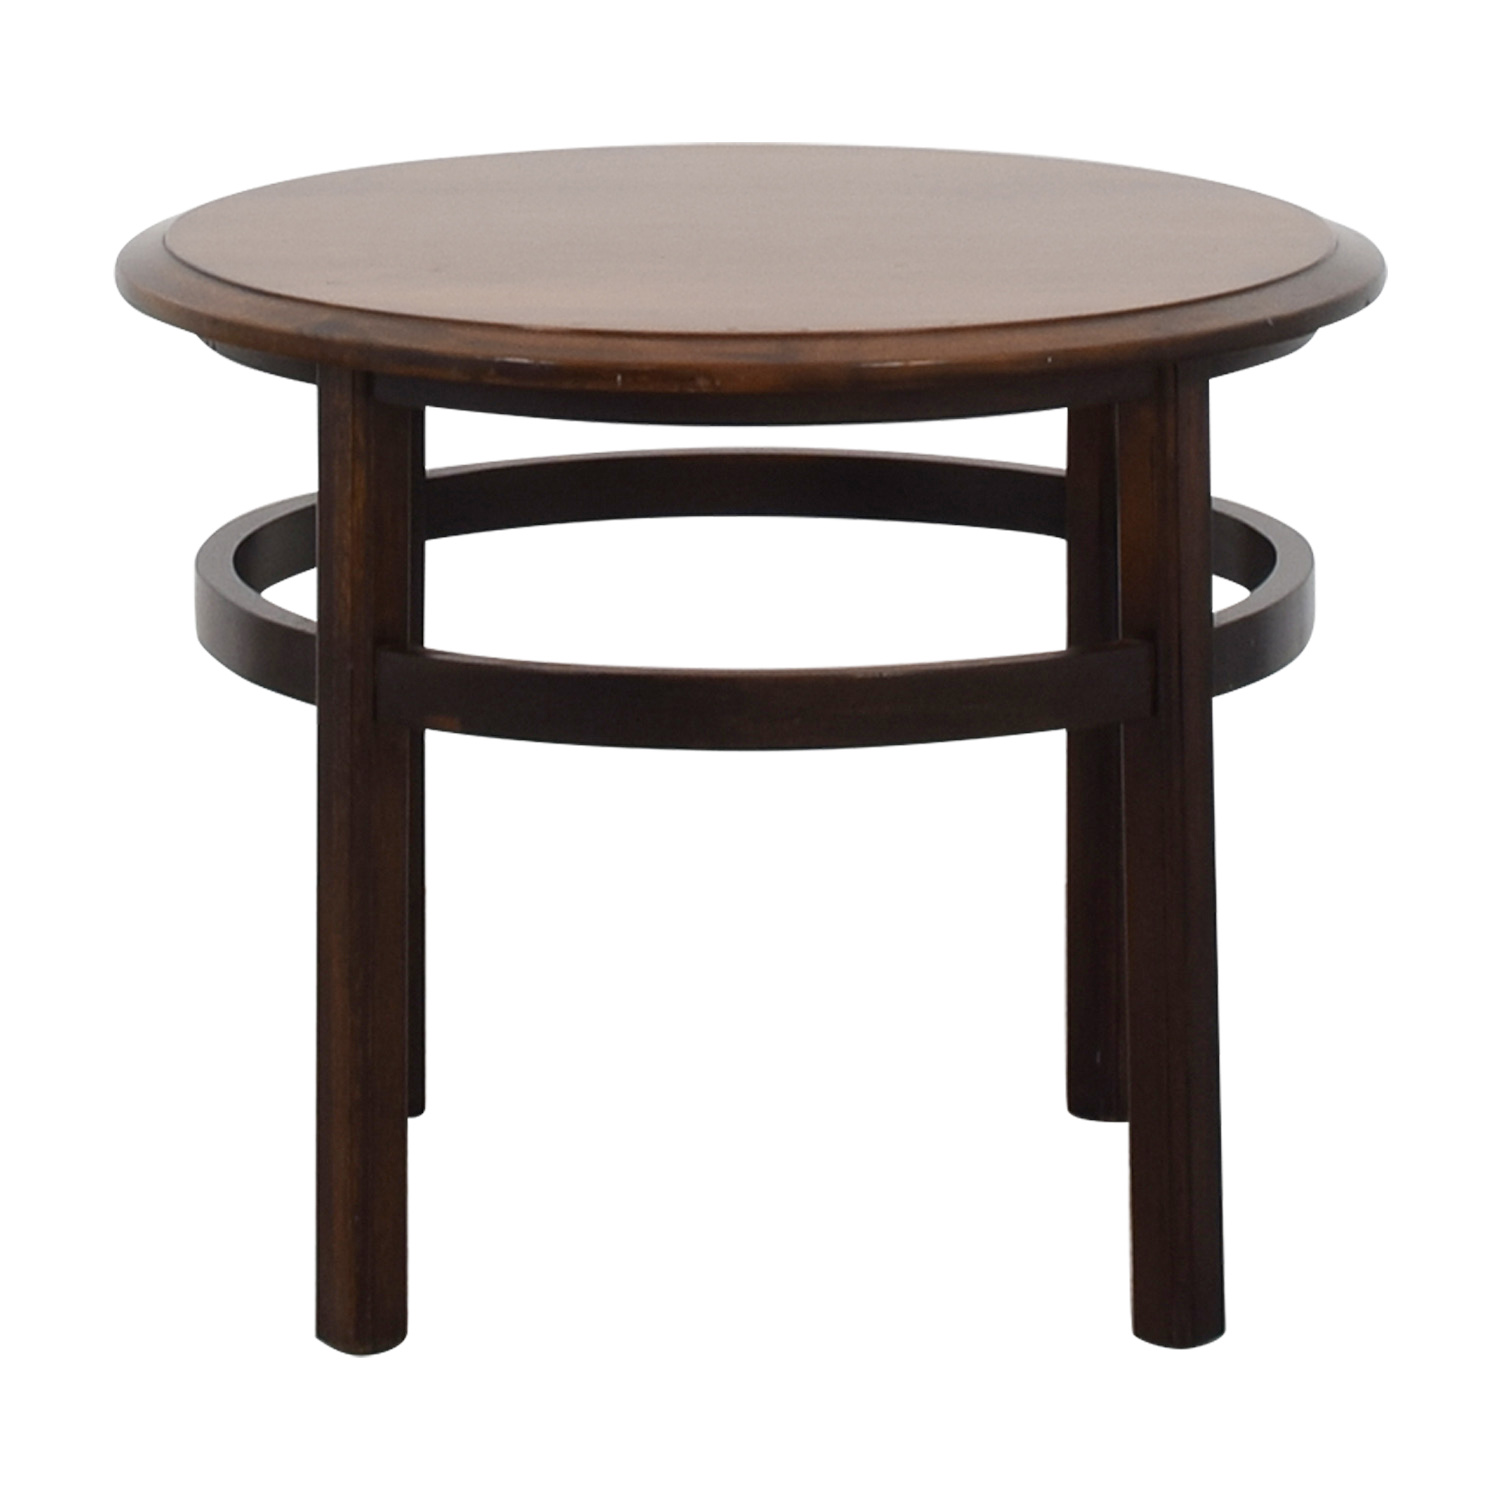 Wayfair Round Accent Table / Tables